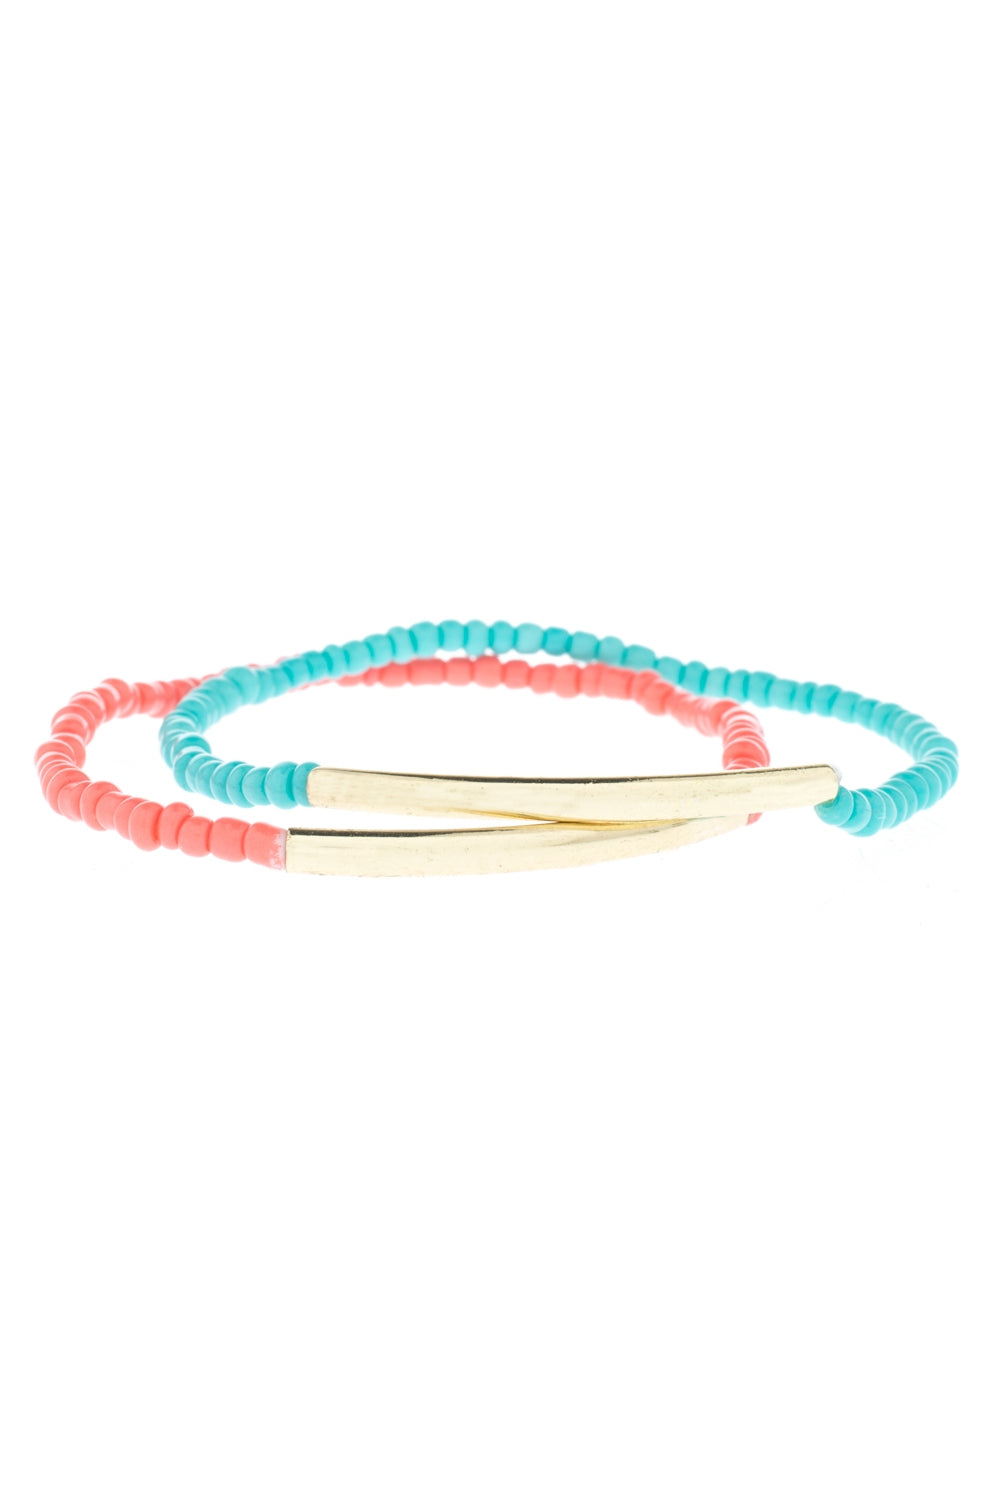 Type 1 Beach Fun Bracelet